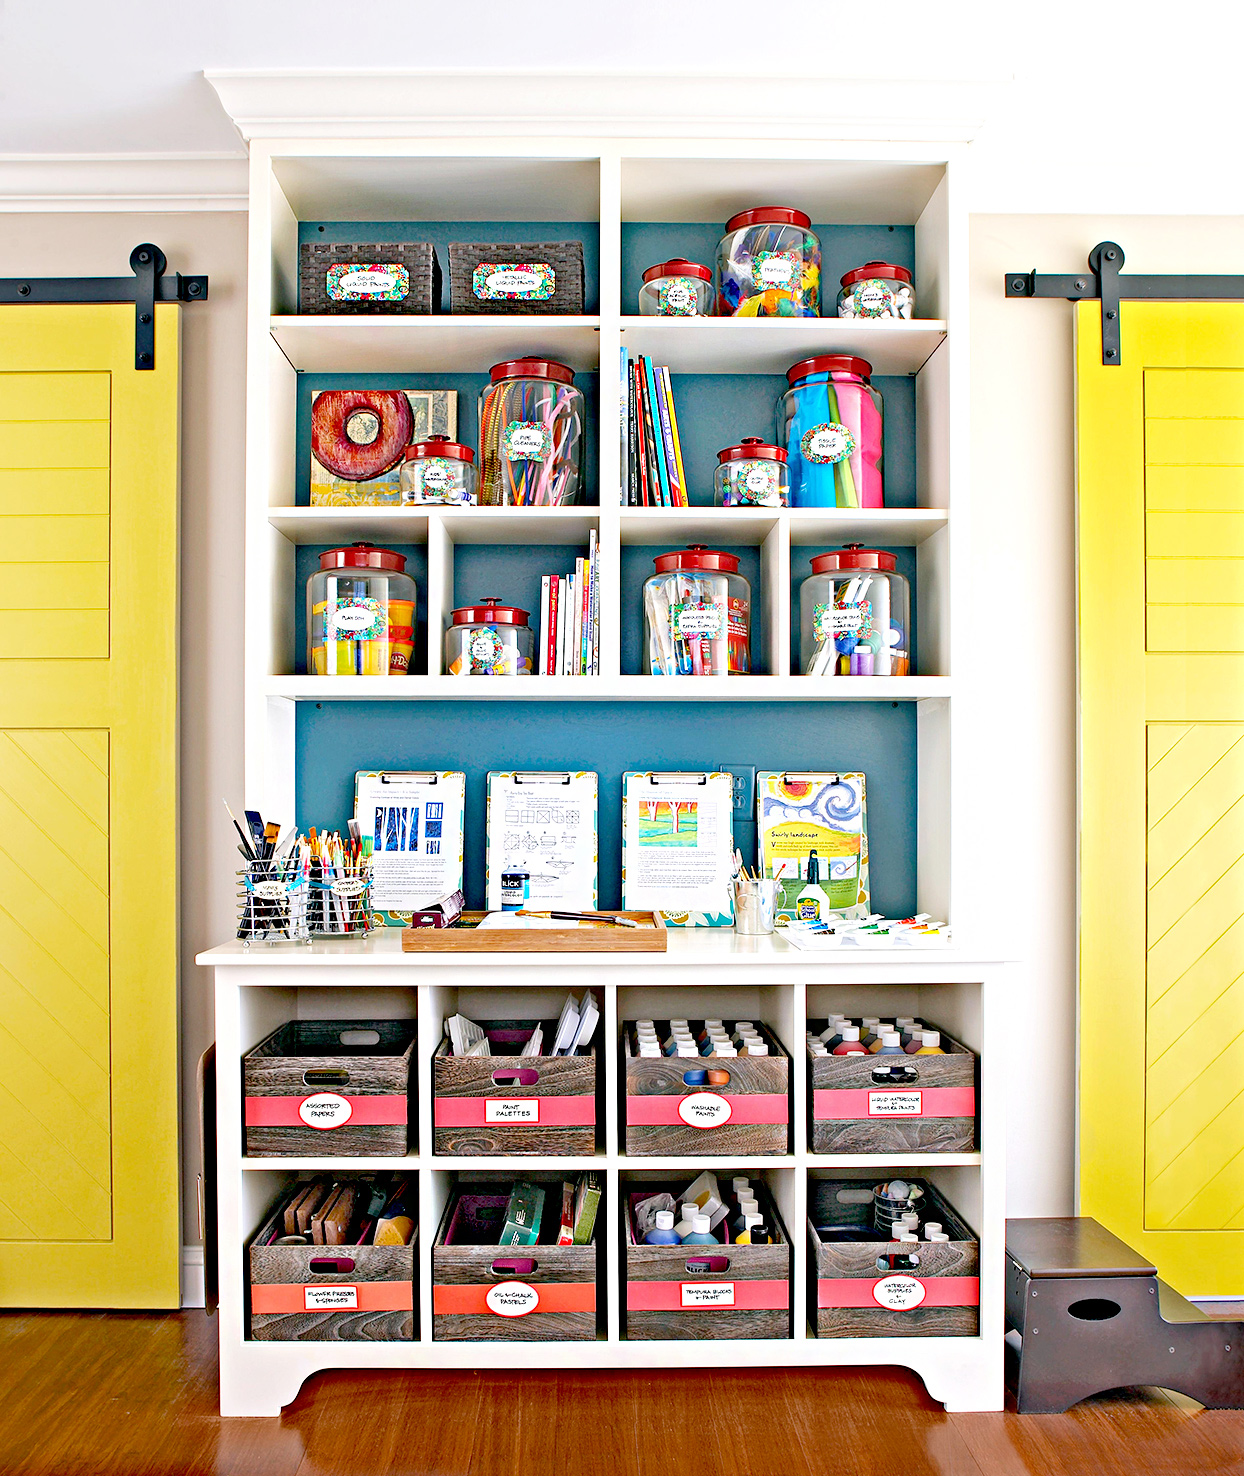 White shelving filled with organized supplies